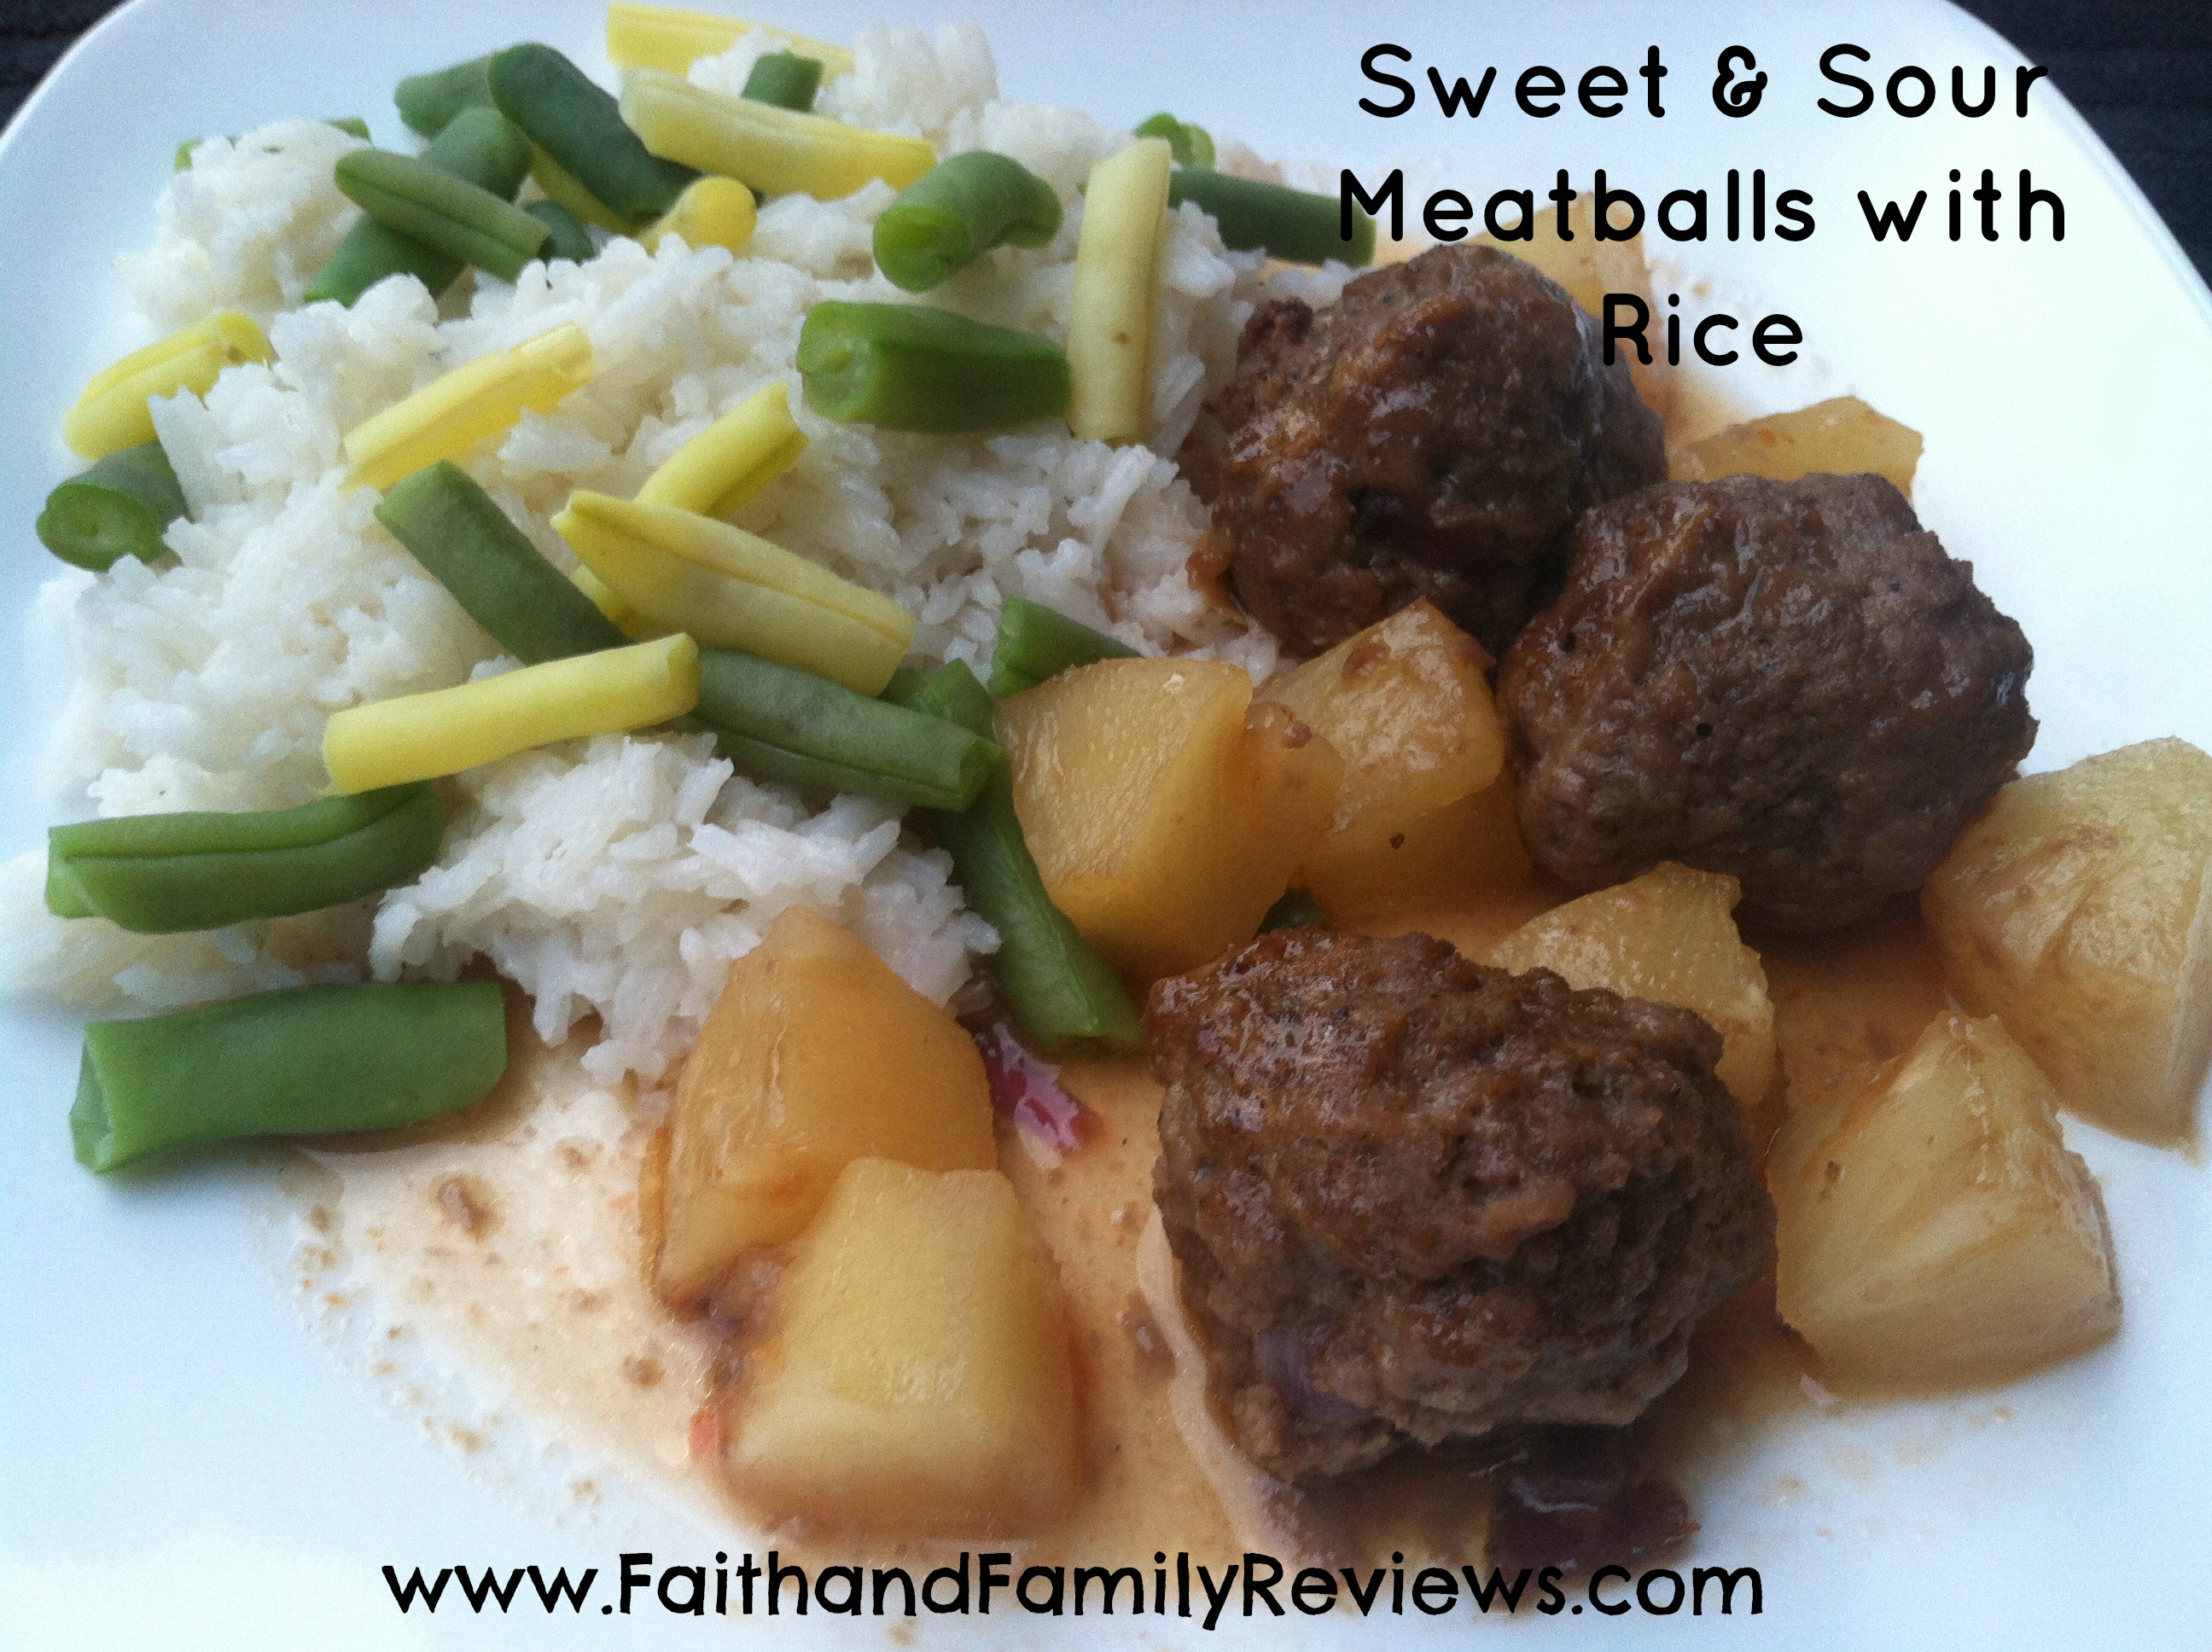 Sweet and Sour Meatballs and Rice-edit